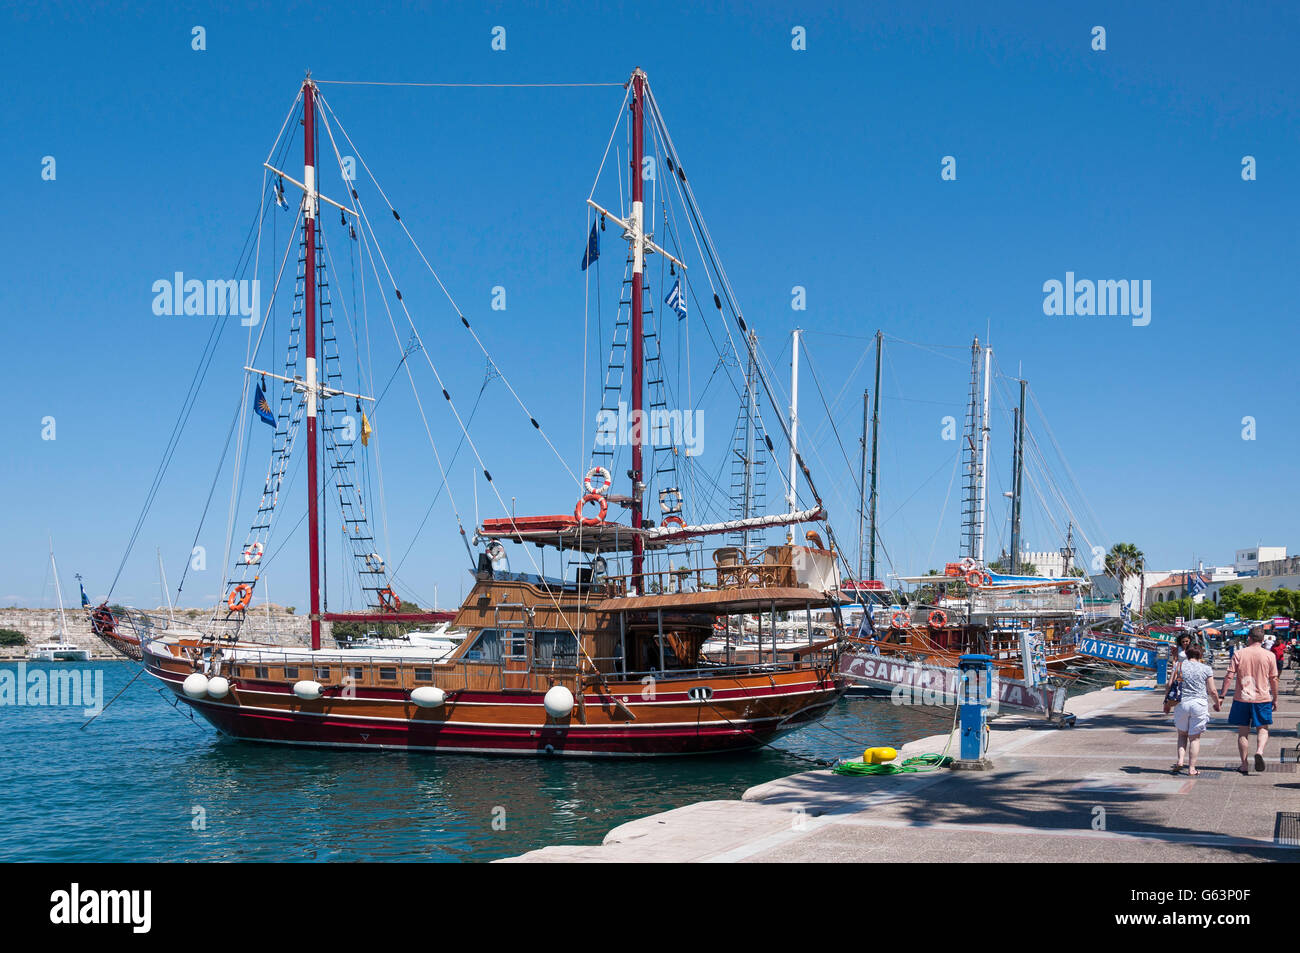 Excursion cruise ships in harbour, Kos Town, Kos (Cos), The Dodecanese, South Aegean Region, Greece - Stock Image